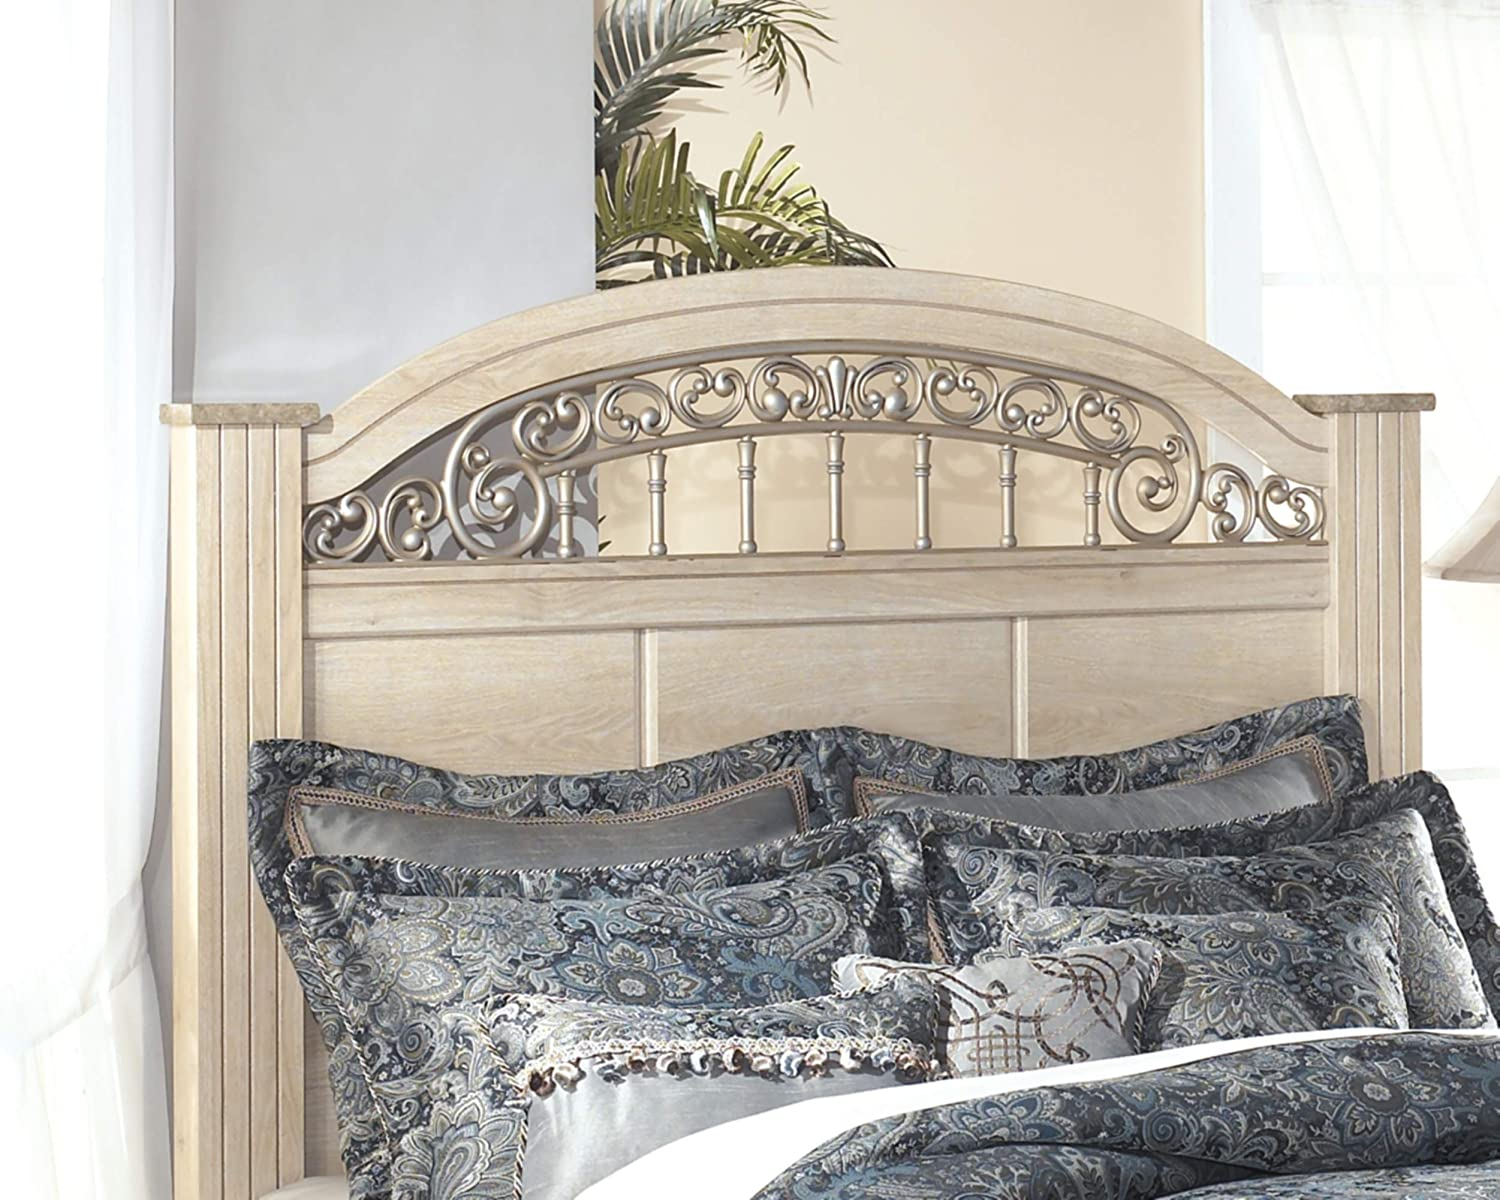 Ashley Furniture Signature Design - Catalina Poster Headboard - Antique Style Bed Set - Component Piece - Headboard Only - Queen Size - Antique White